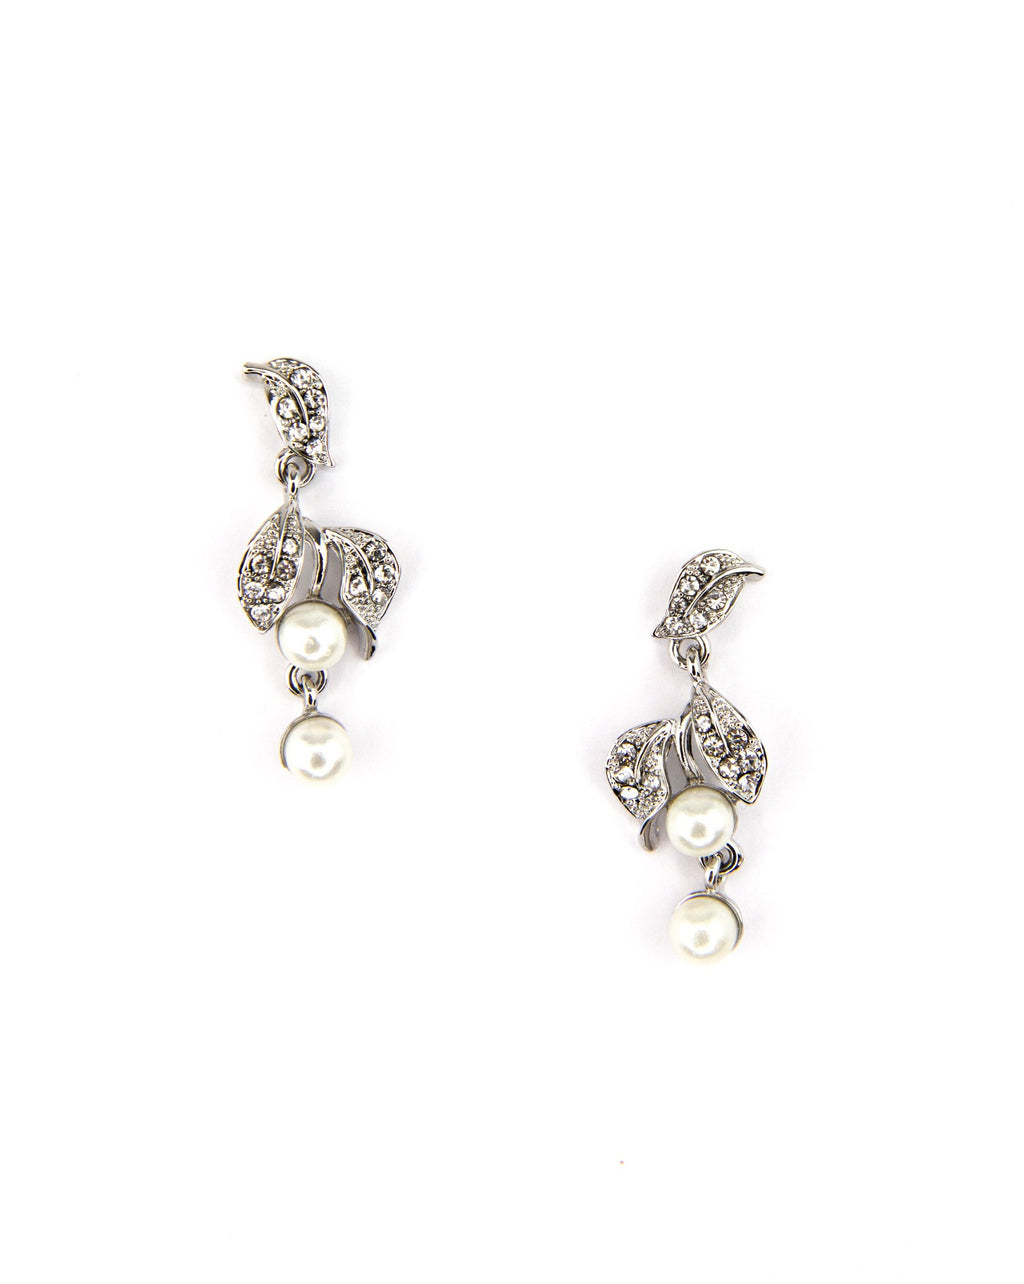 Snowdrop Earrings